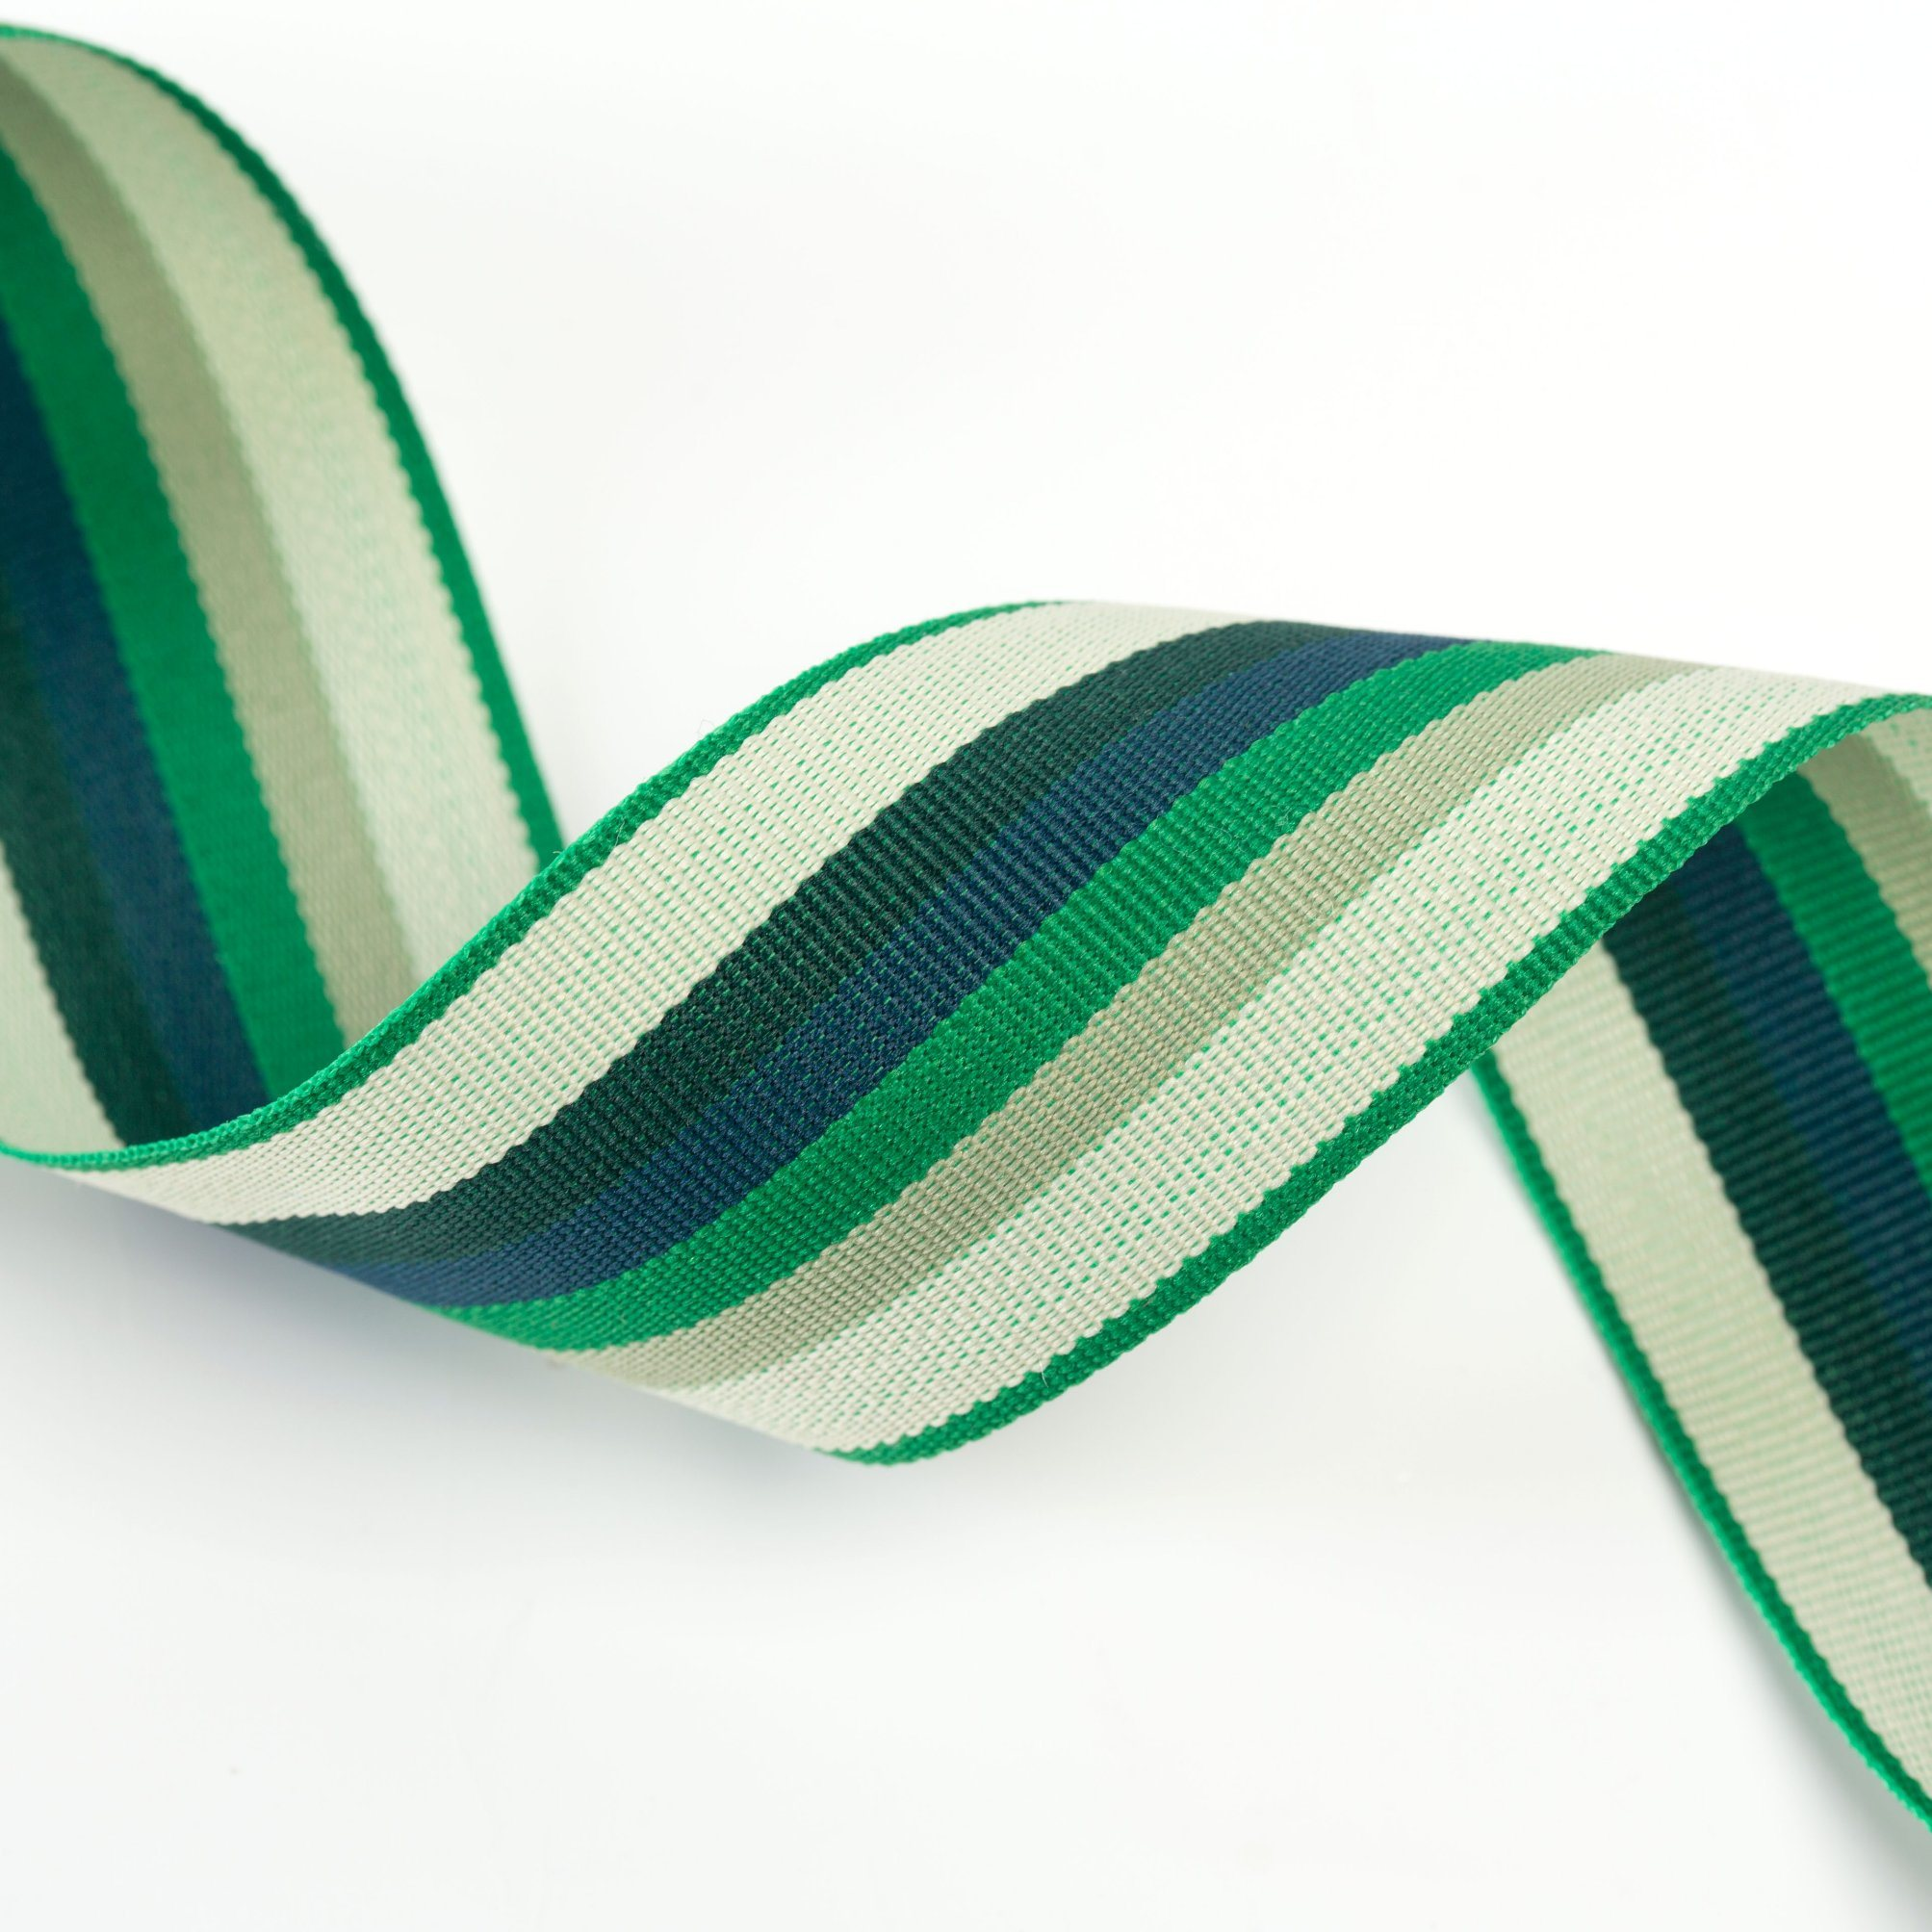 The Mixed Color Polyester Ribbon for Garments